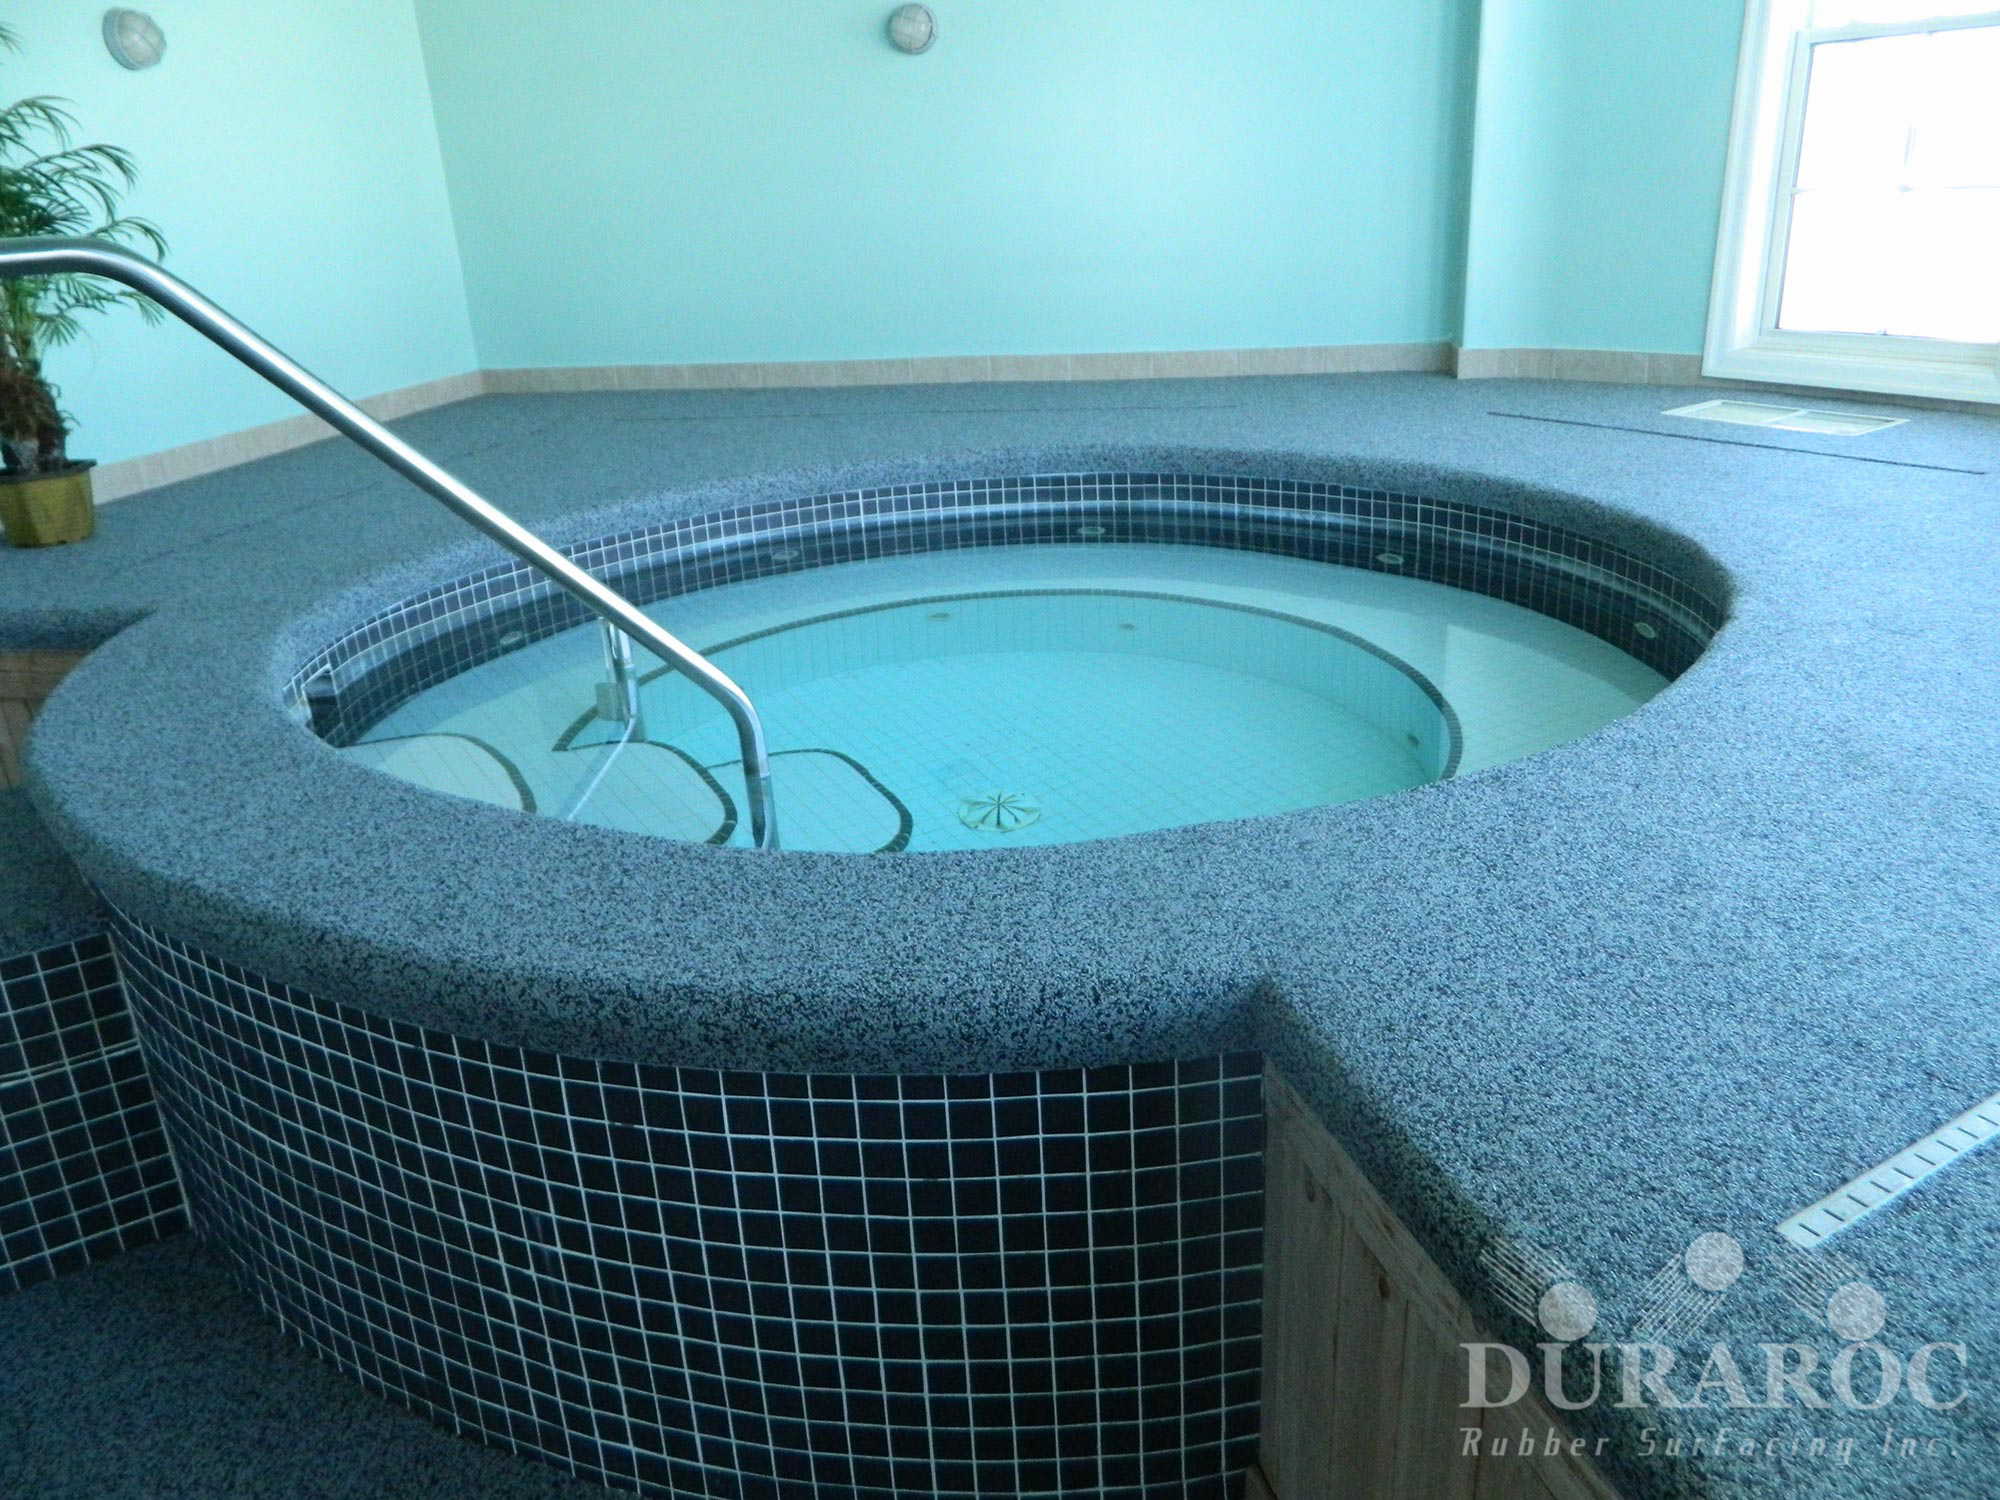 Spa with Duraroc anti-slip coating